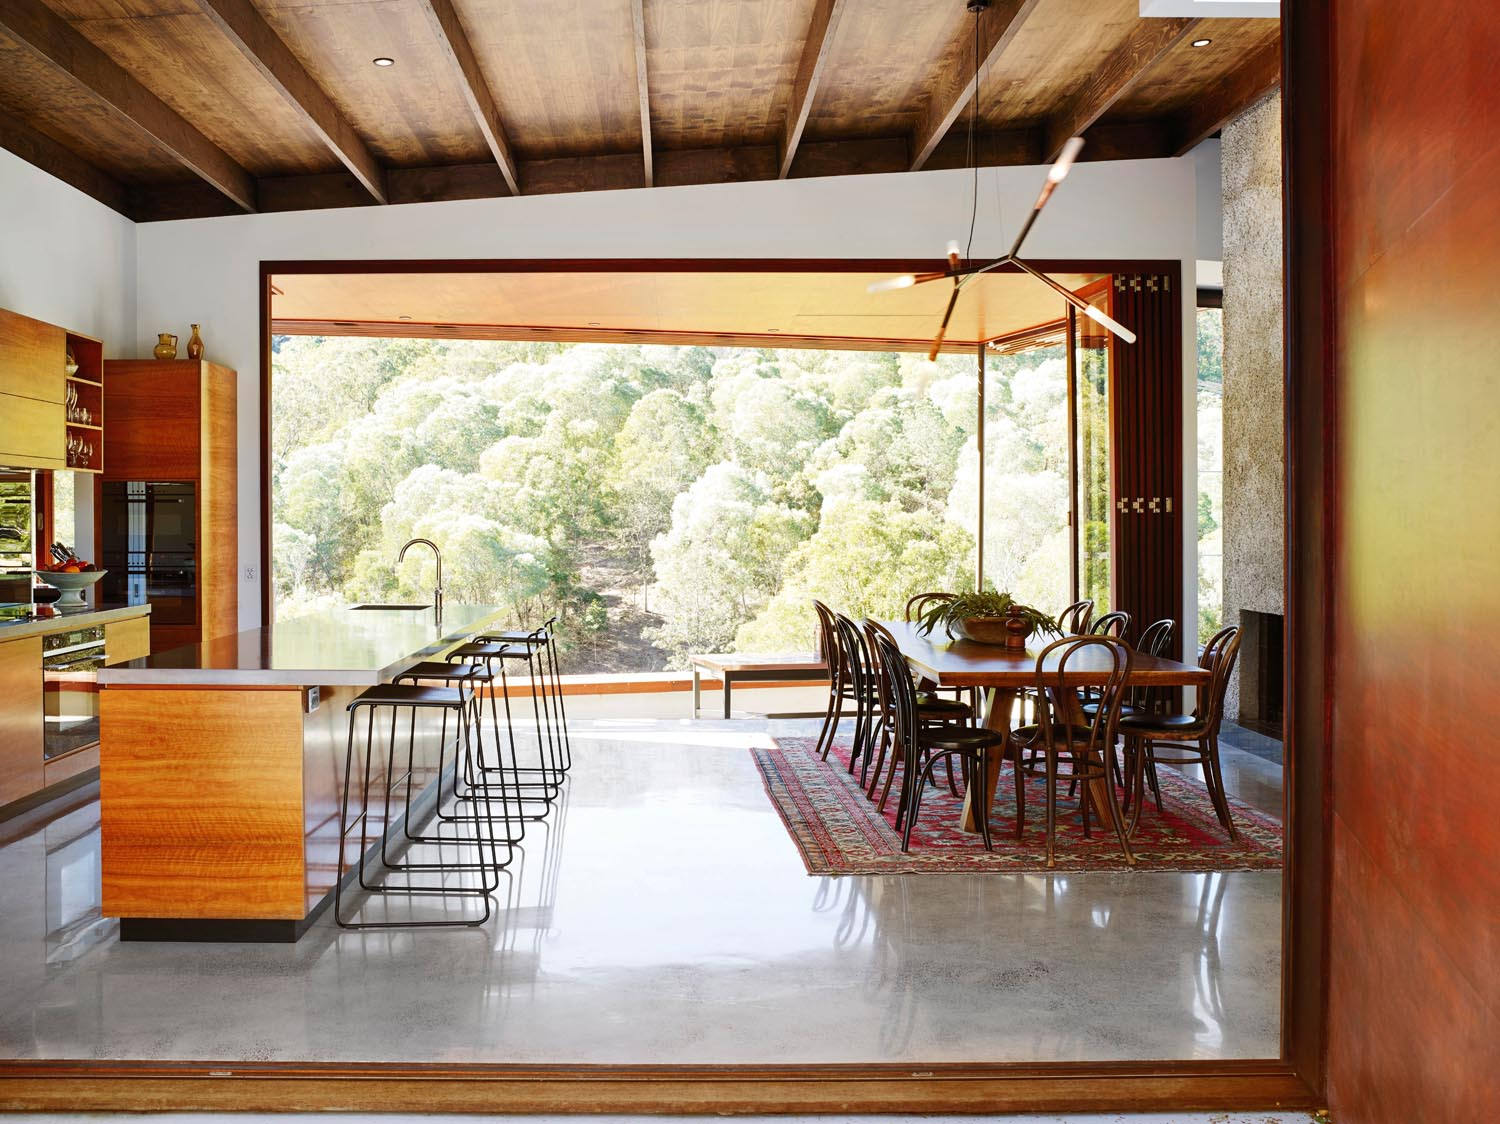 The open-plan kitchen lets in streams of light, meshing the indoors with the outdoors